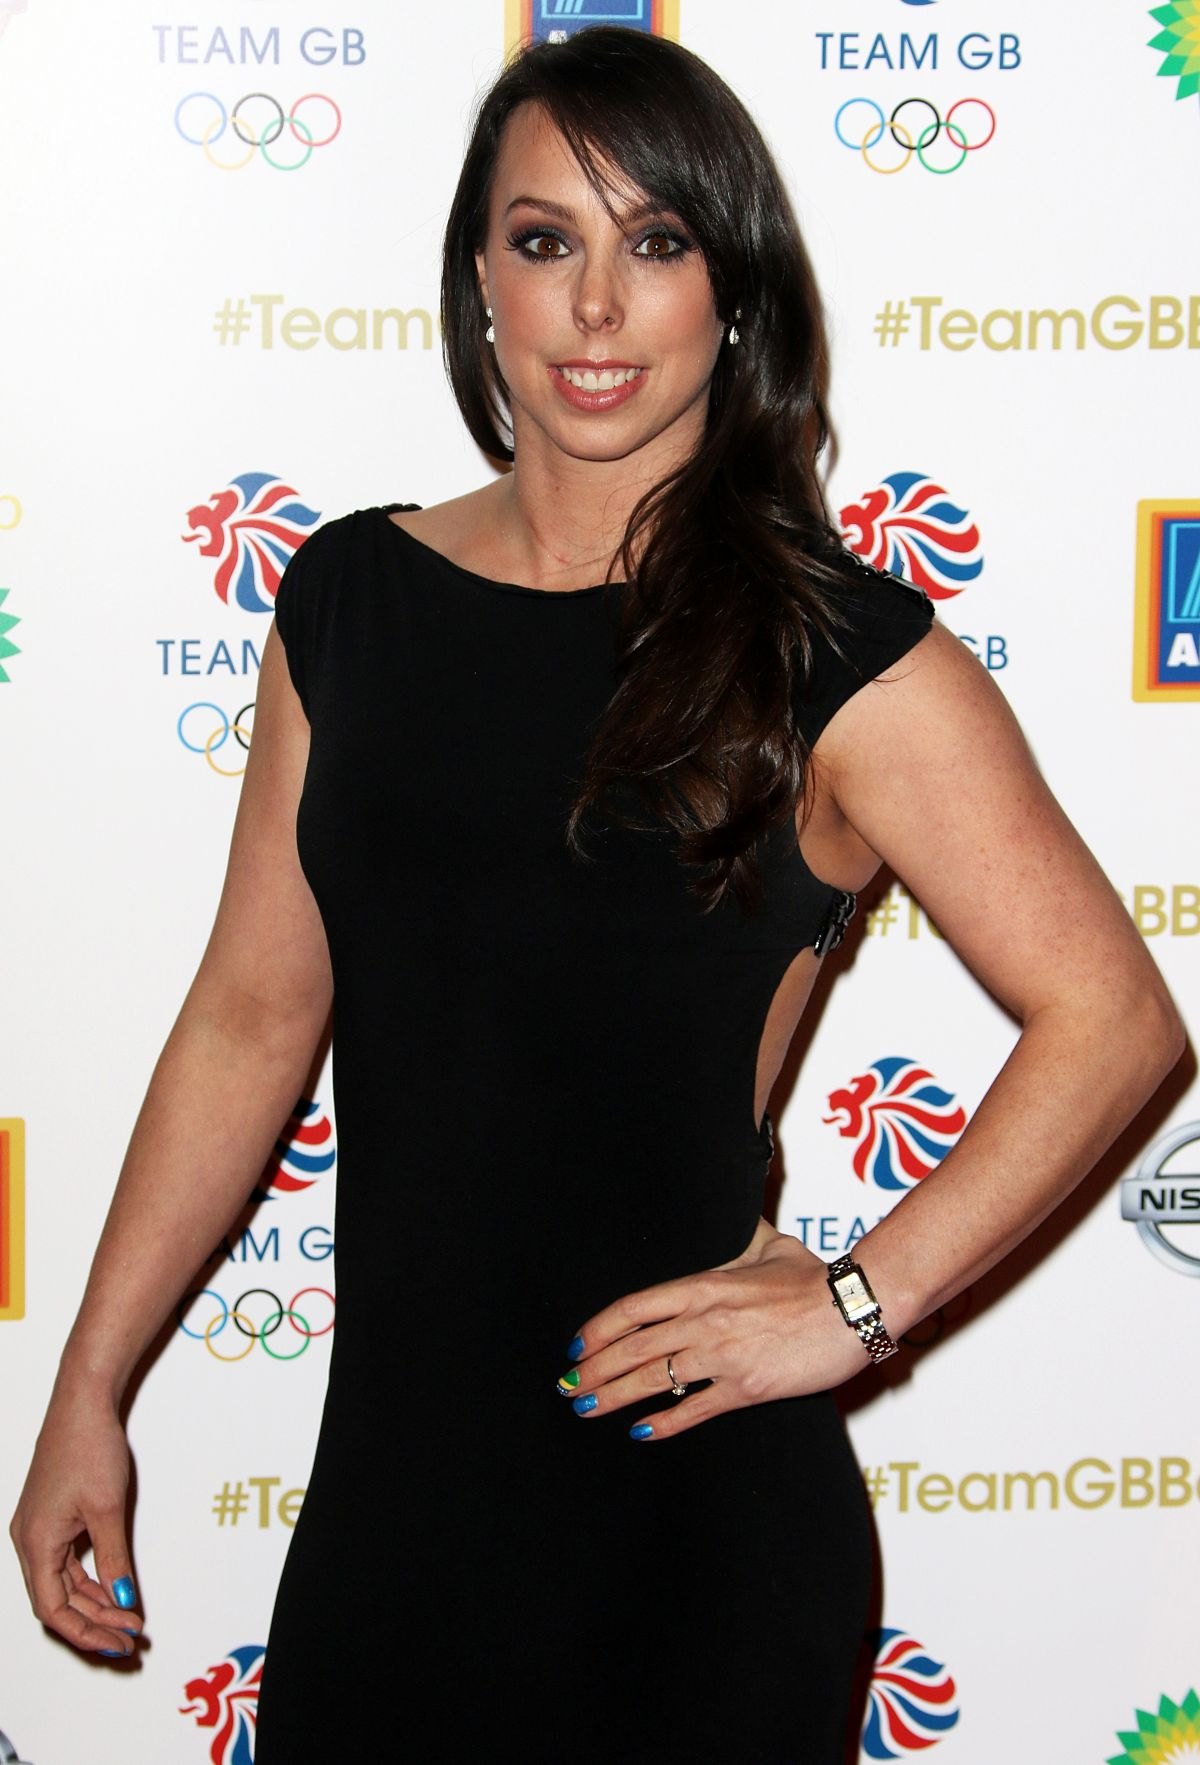 BETH TWEDDLE at Team GB Ball in London 11/30/2016